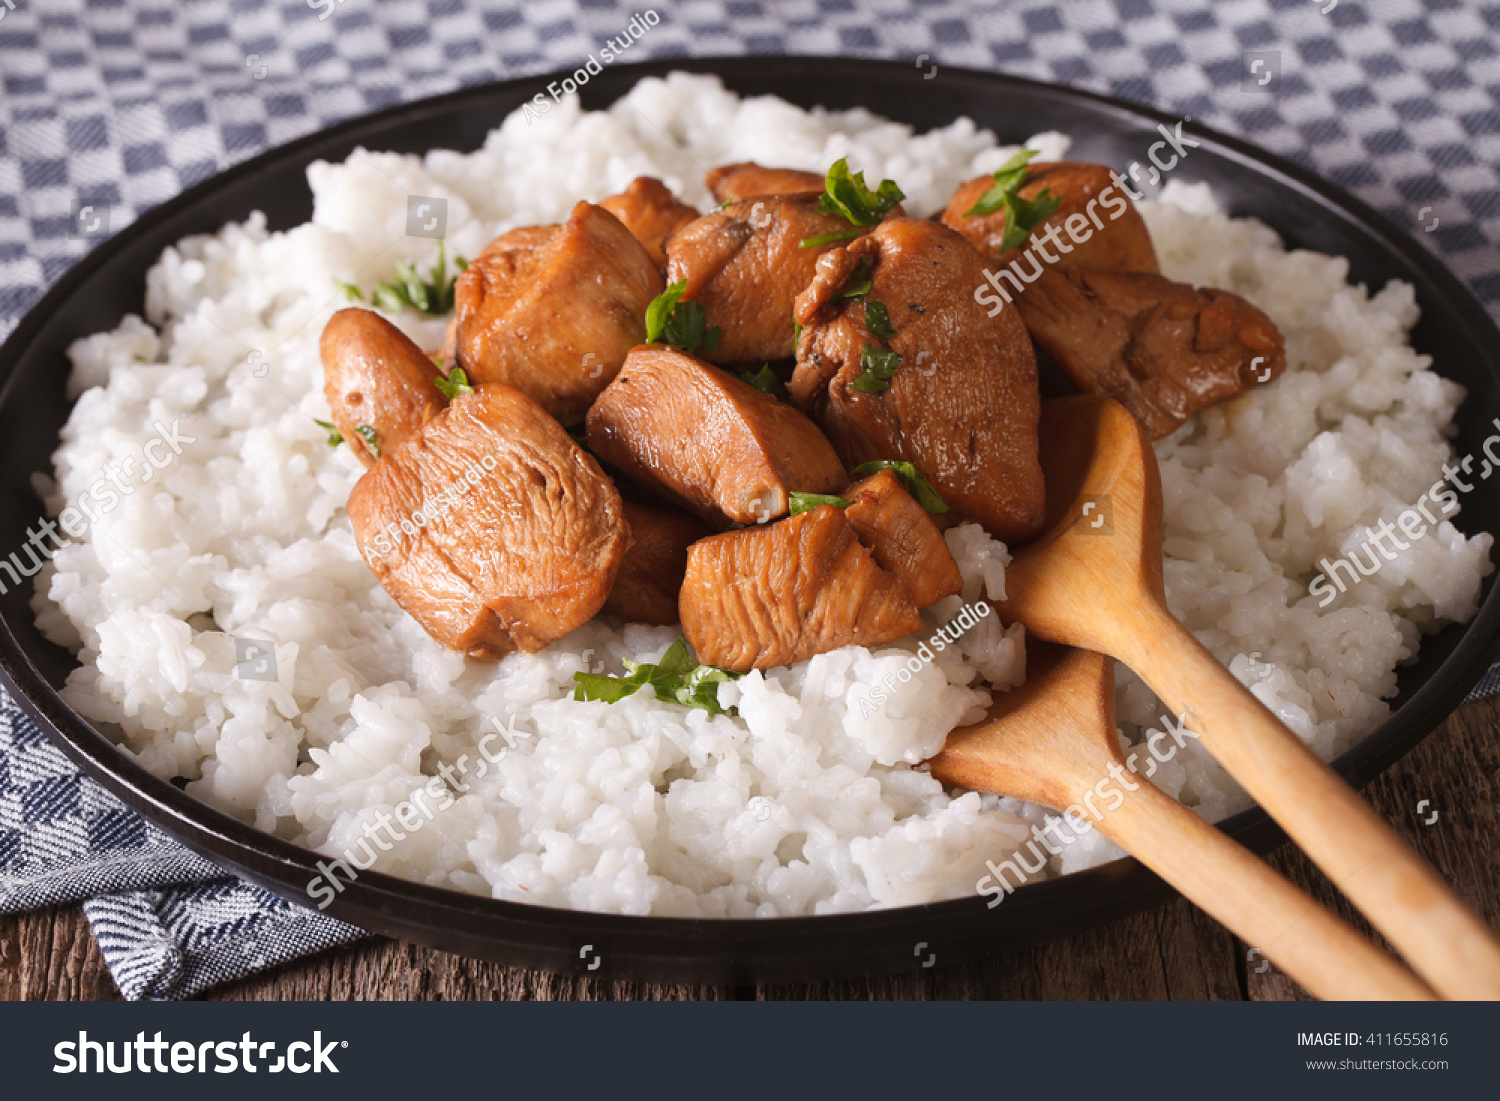 Philippine cuisine adobo rice closeup on stock photo for Adobo filipino cuisine